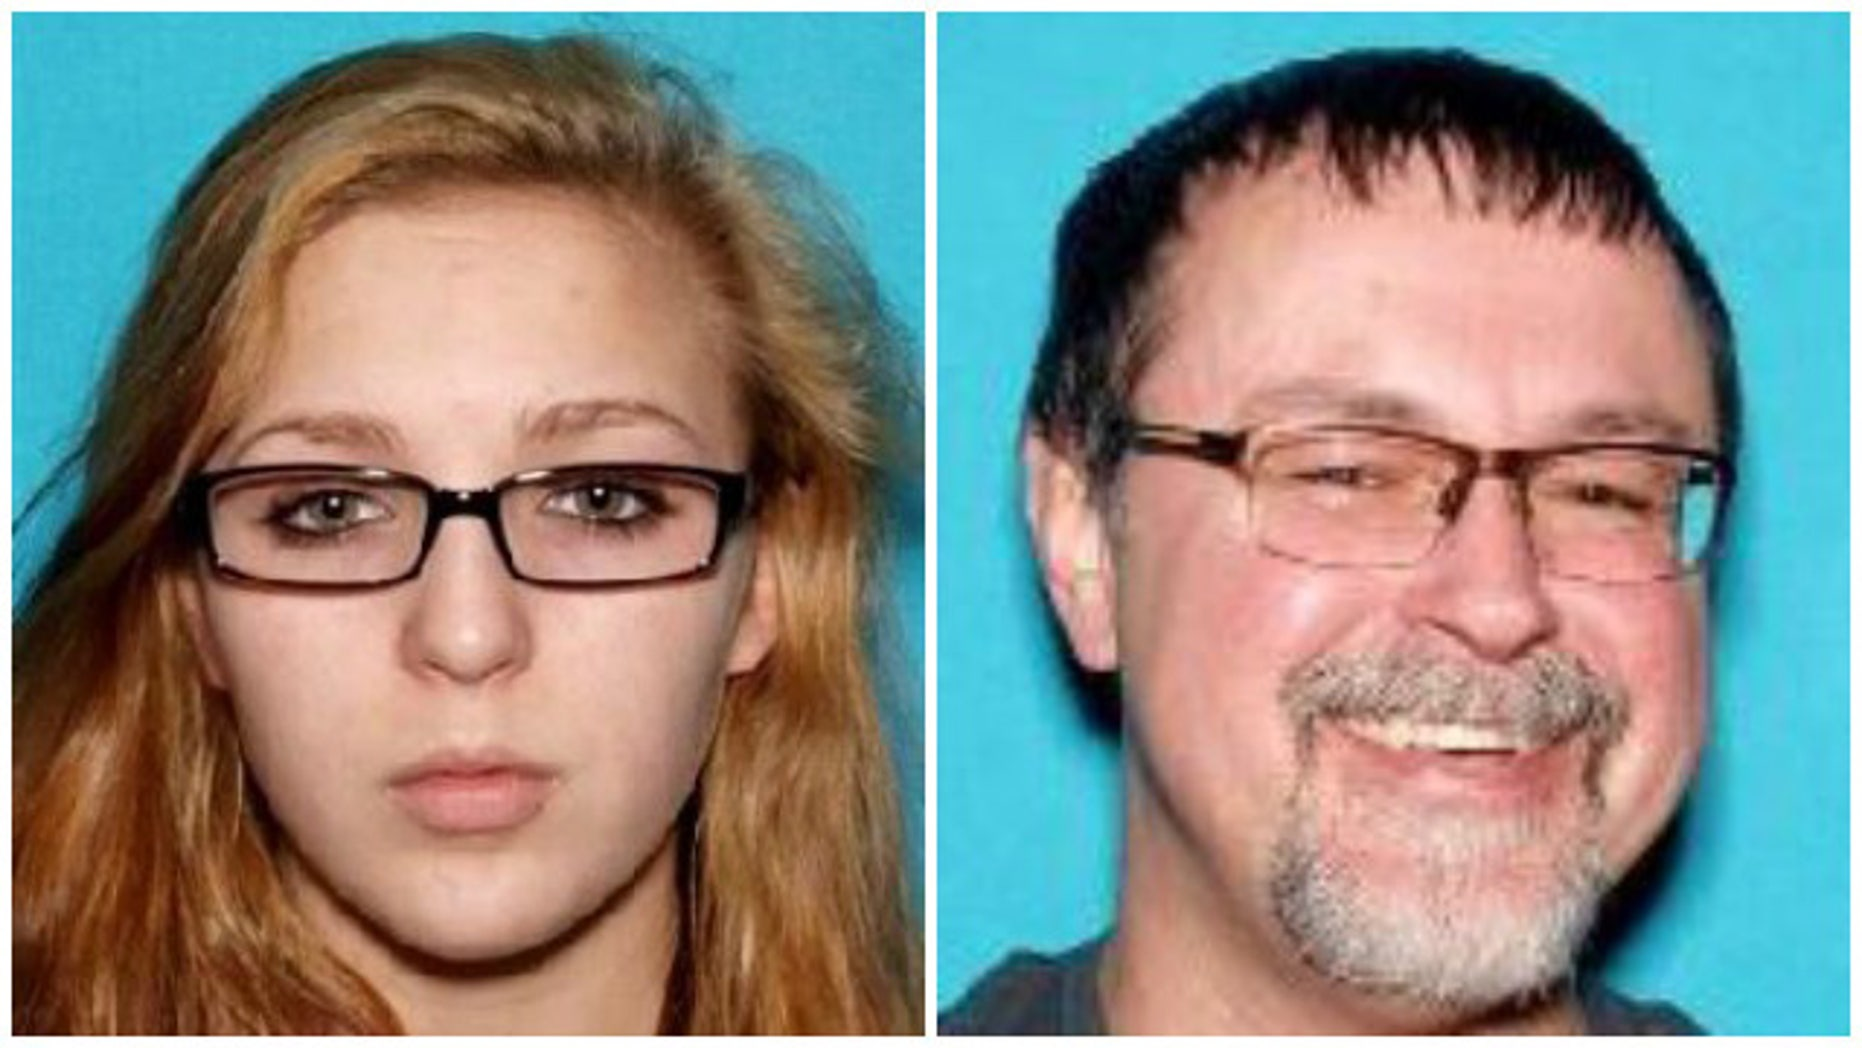 Elizabeth Thomas was believed to be with former teacher Tad Cummins.